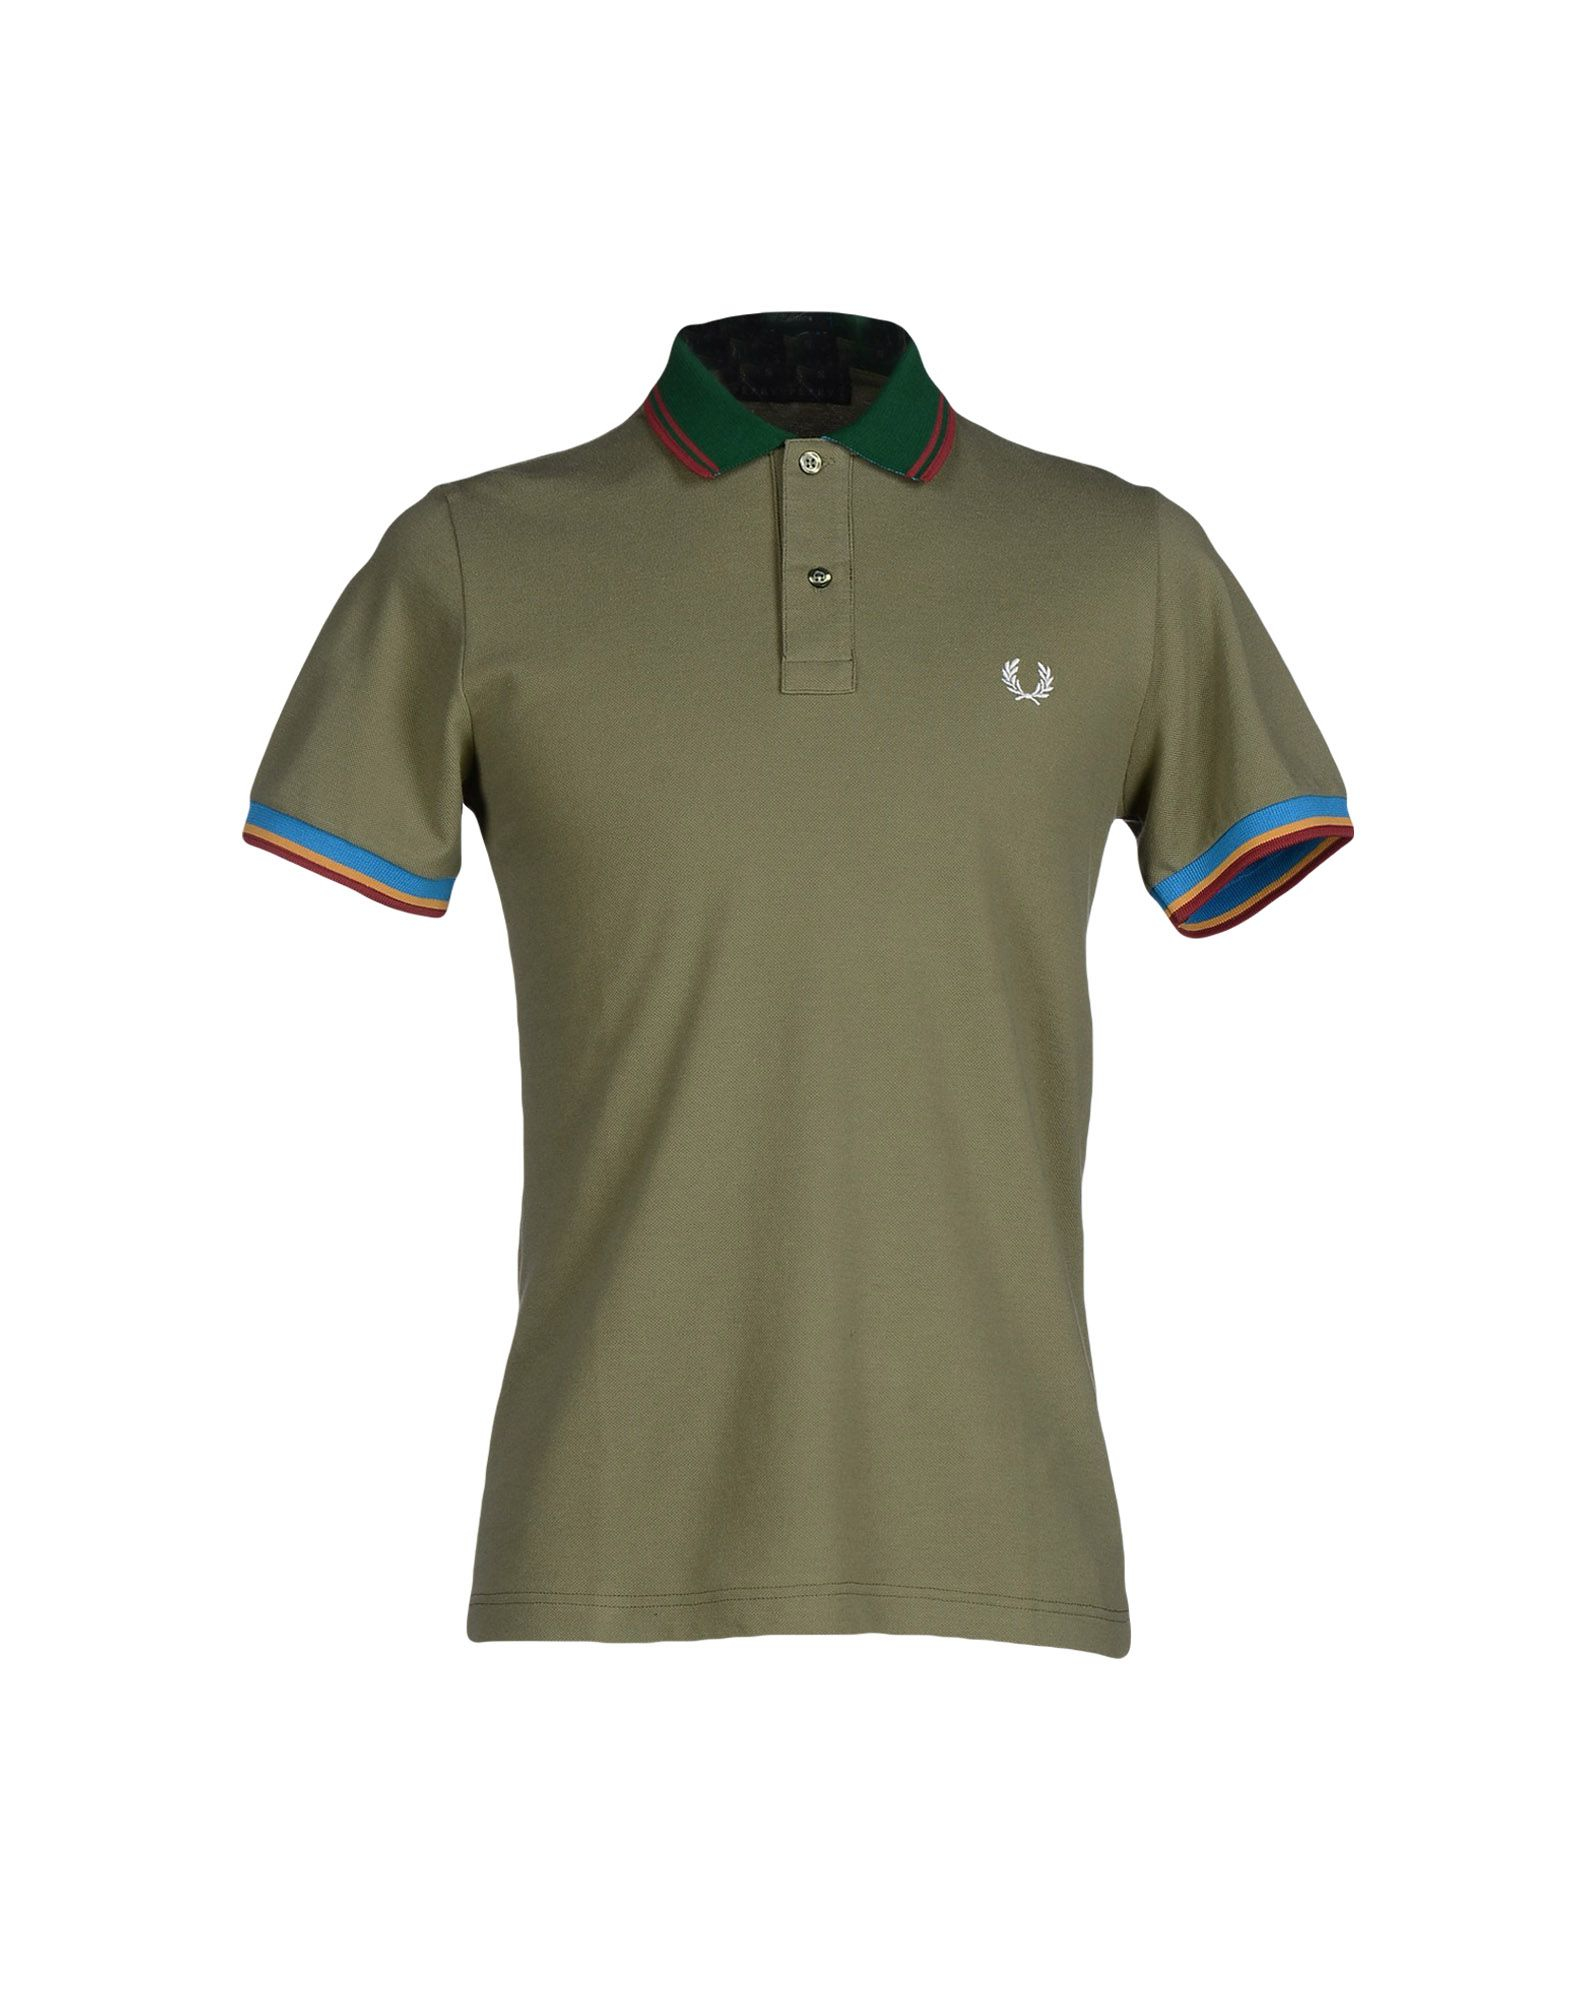 lyst fred perry polo shirt in green for men. Black Bedroom Furniture Sets. Home Design Ideas